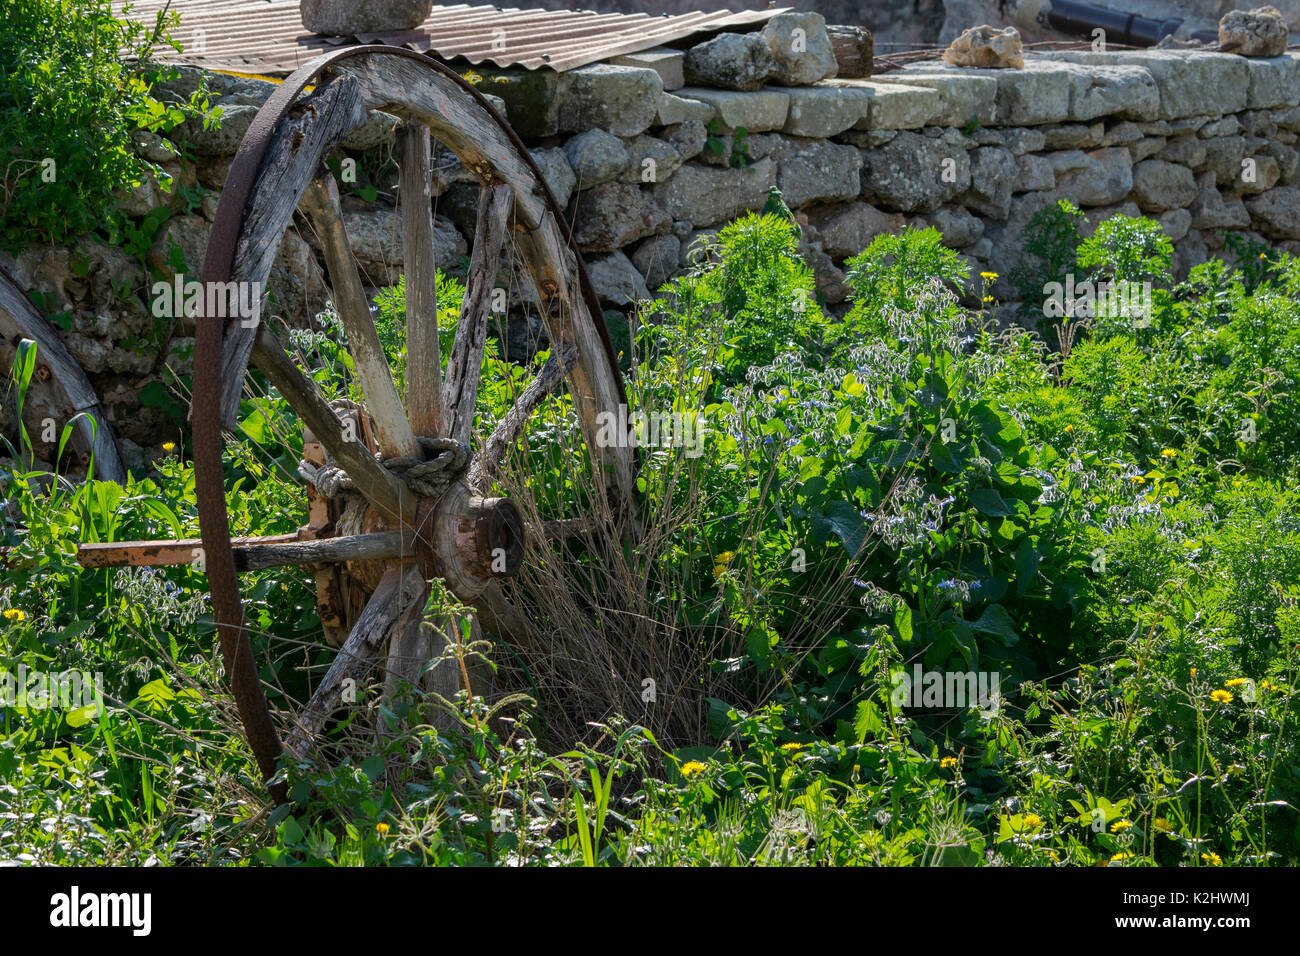 An old cartwheel left to rot and rust in the Maltese countryside, being overgrown by vegetation. - Stock Image